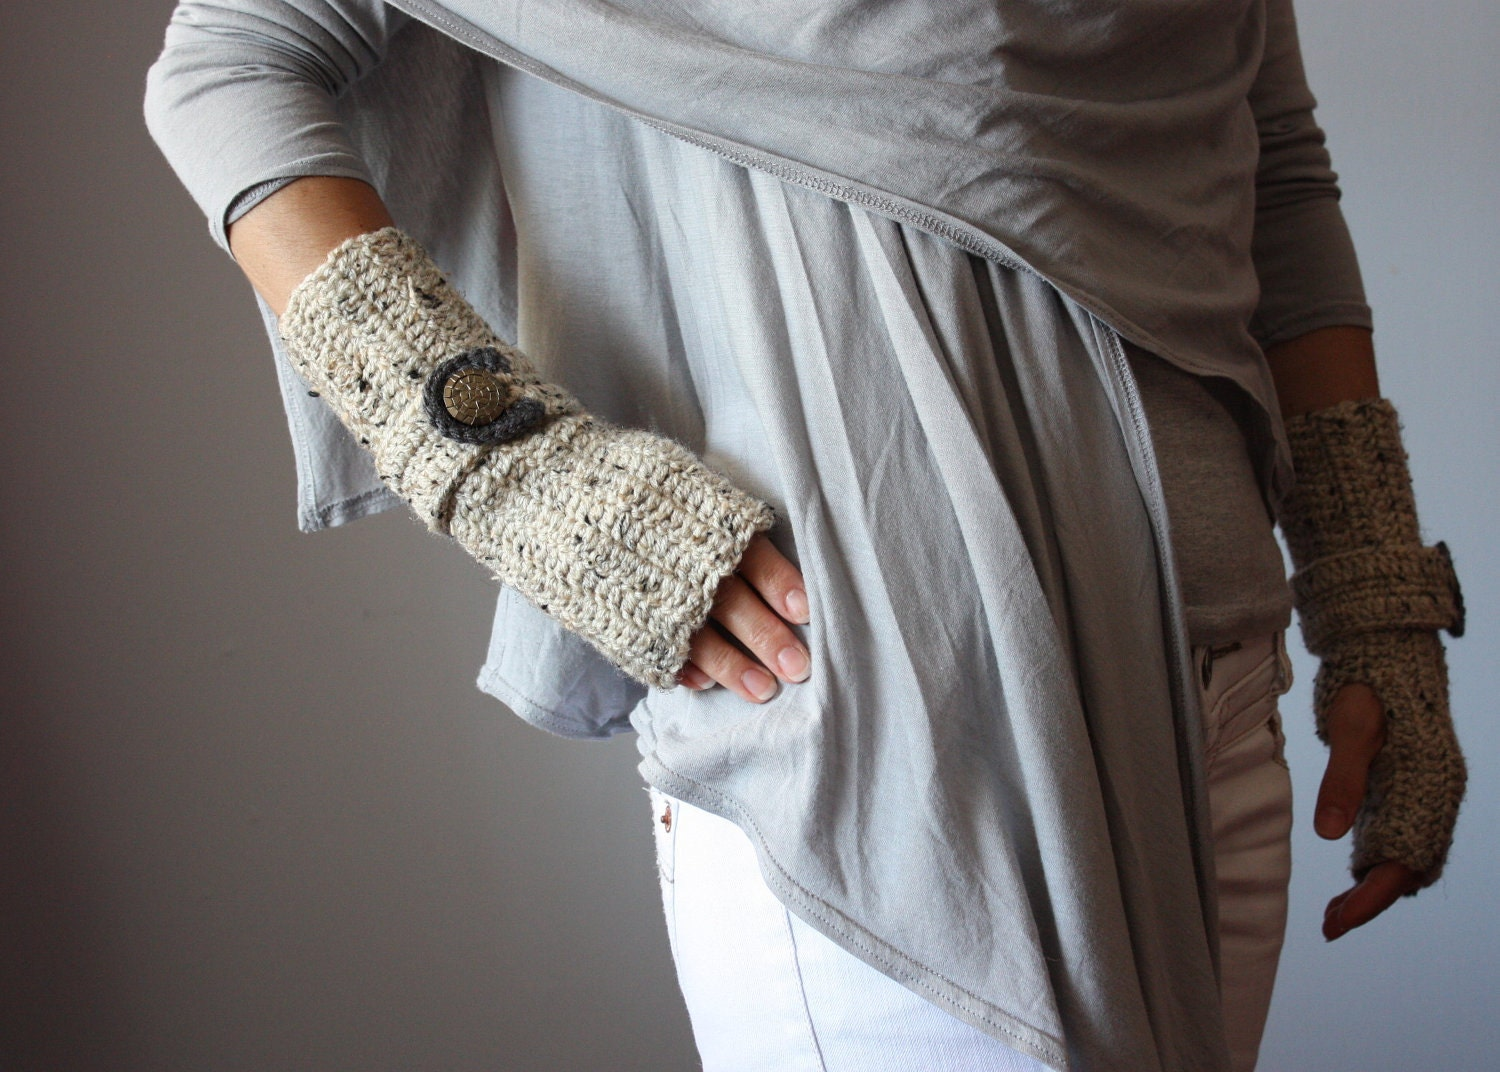 Crochet Fingerless Gloves Mittens Arm Warmers by VitalTemptation